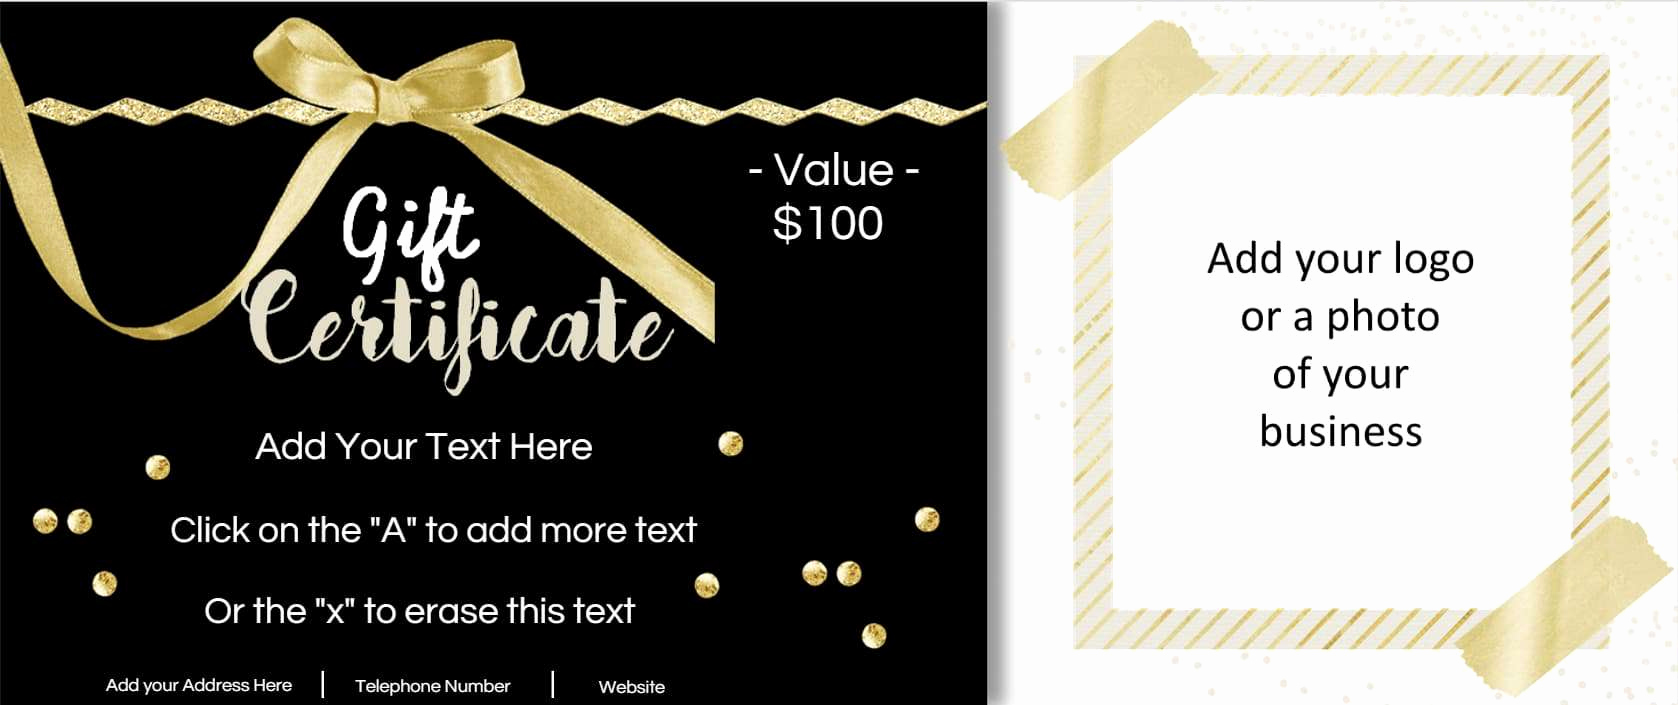 Photo Gift Certificate Template Beautiful Gift Certificate Template with Logo